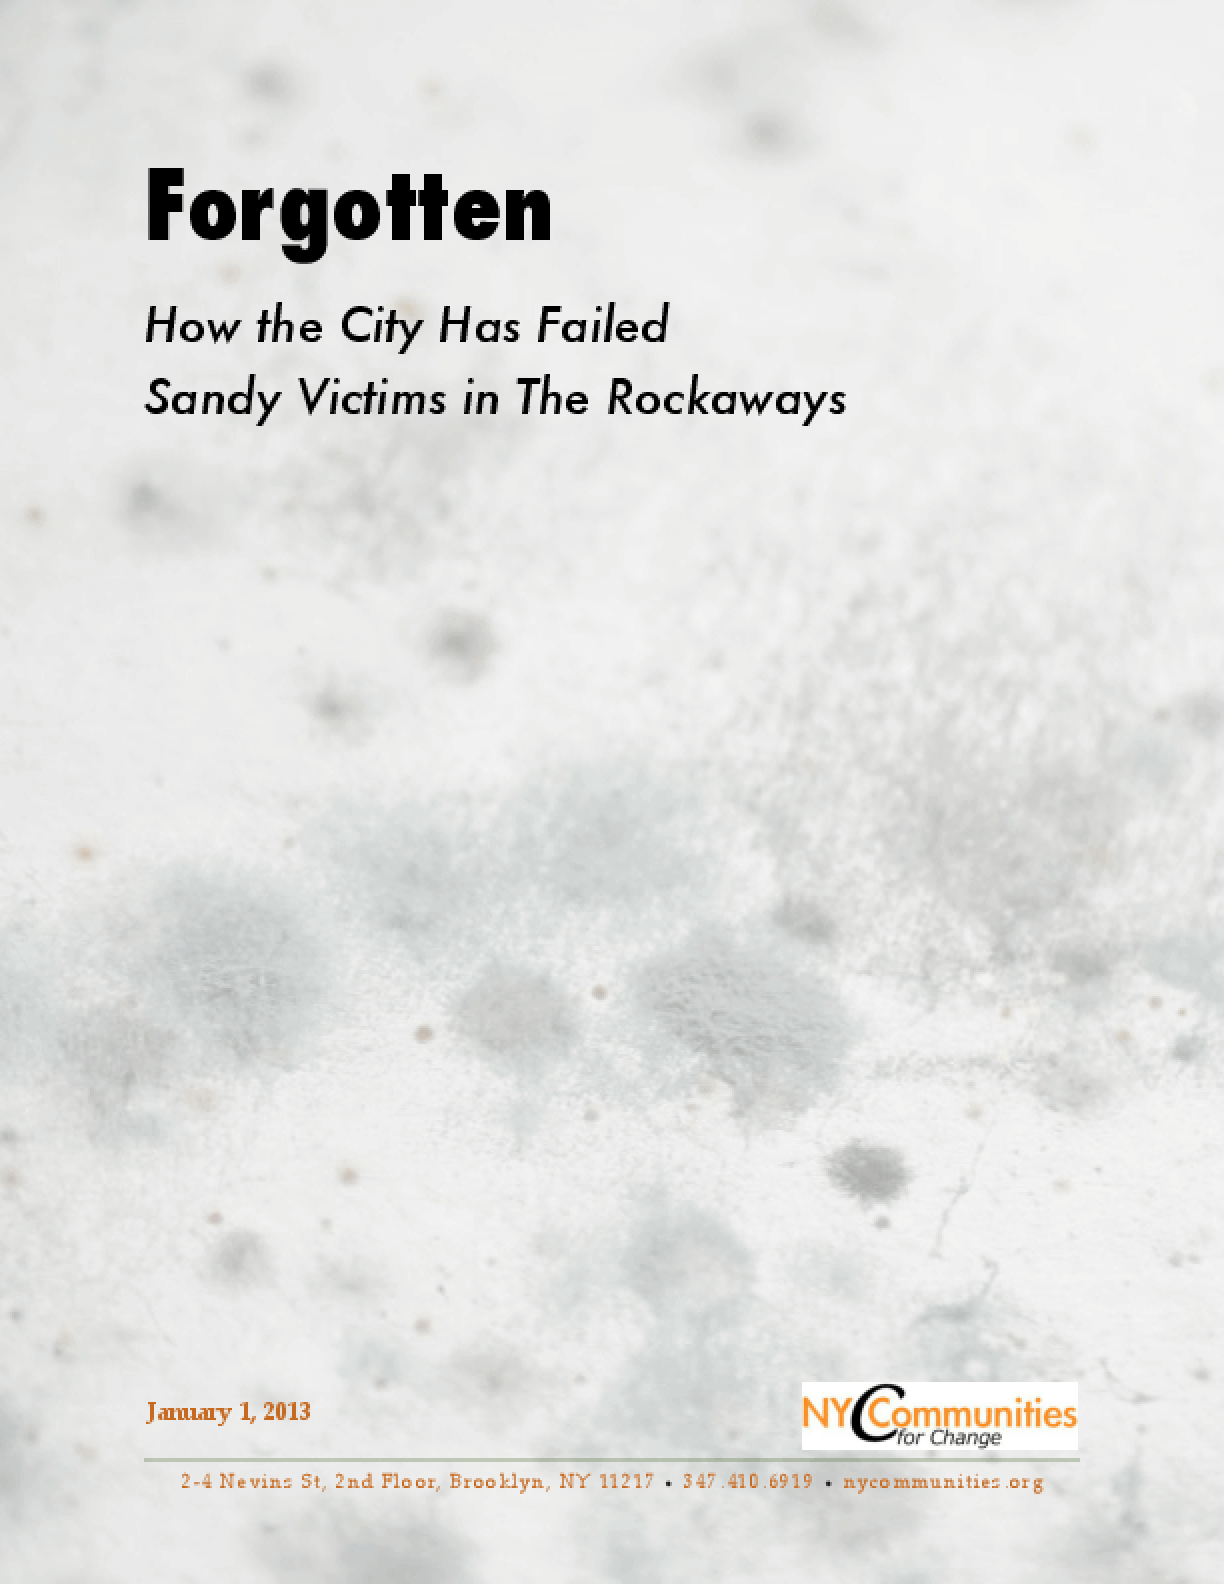 Forgotten: How the City Has Failed Sandy Victims in The Rockaways